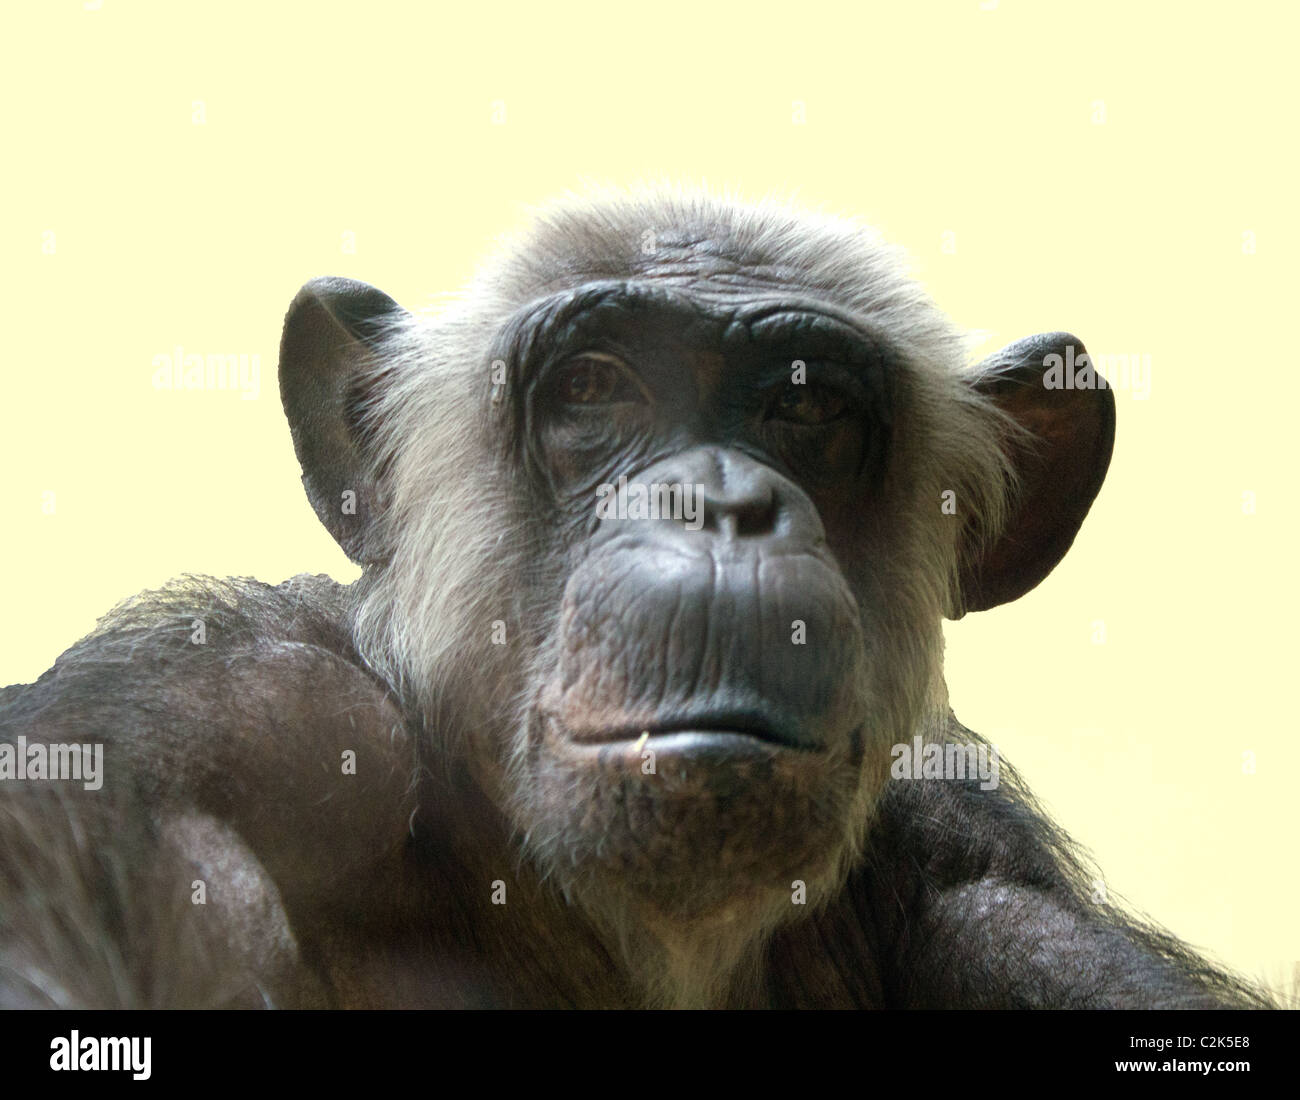 Singe isolé Photo Stock